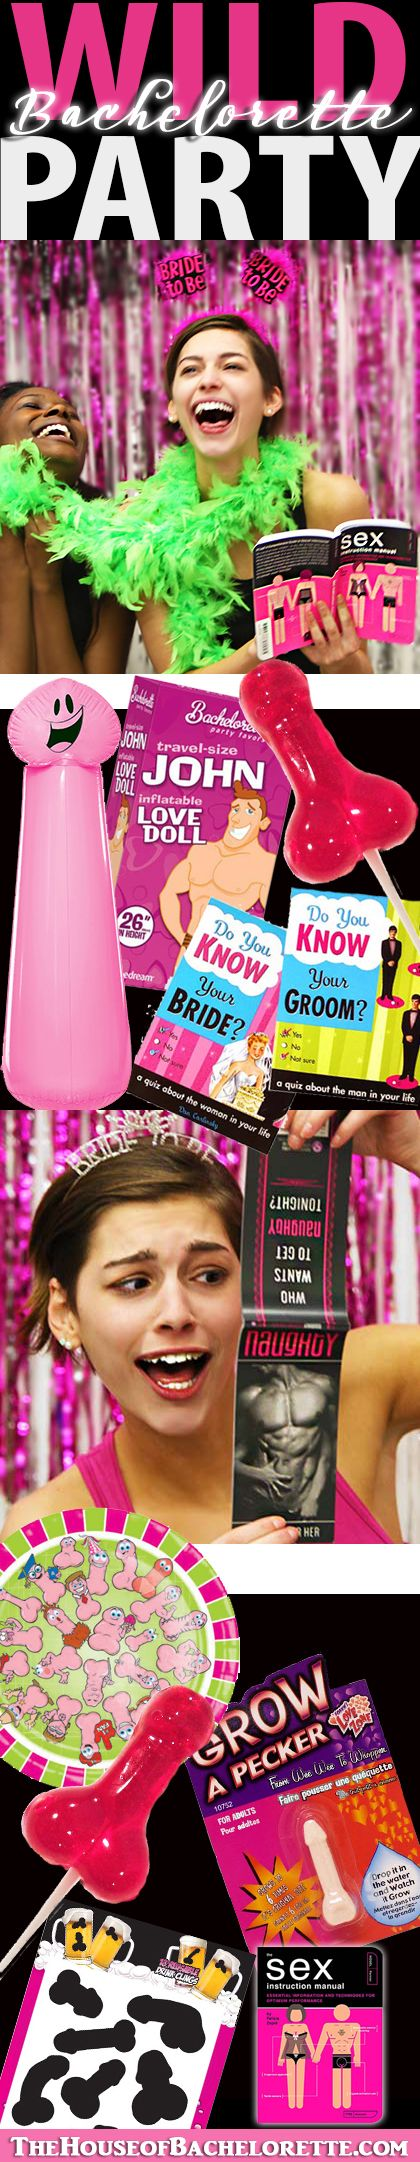 Throw a wild Bachelorette Party the Bride will NEVER FORGET :)